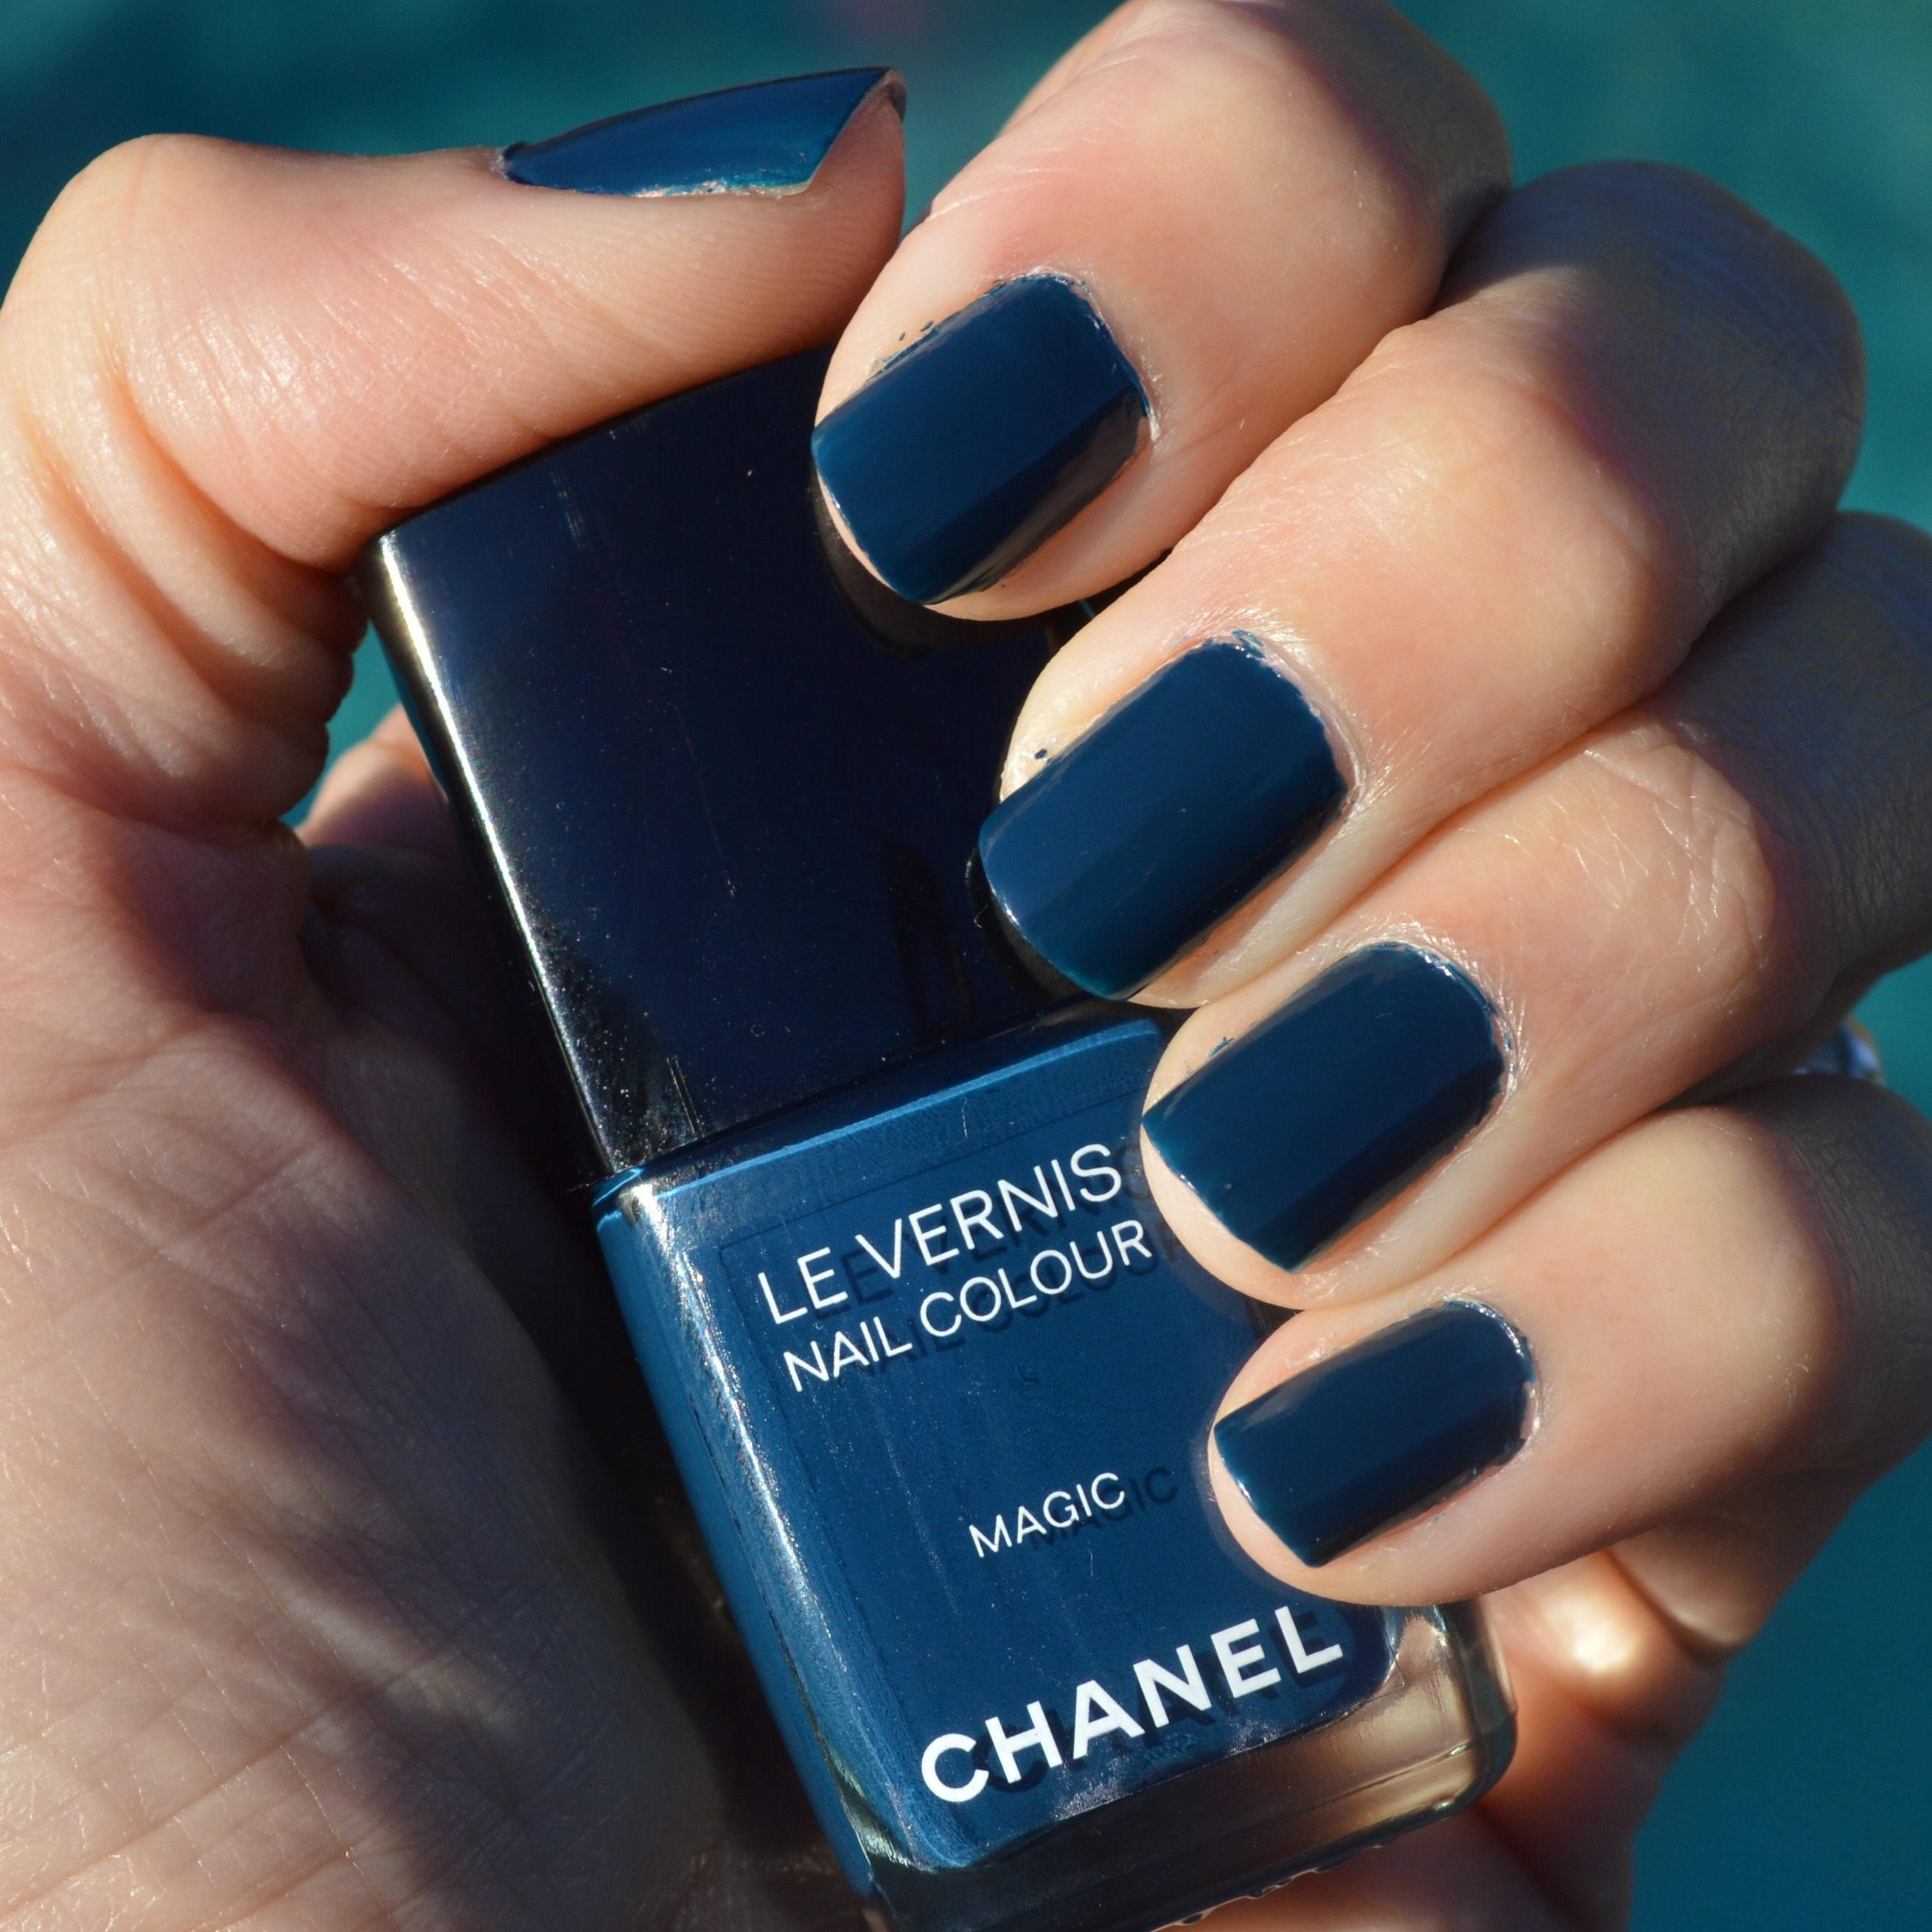 Chanel Magic nail polish review from the Nuit Magique collection ...